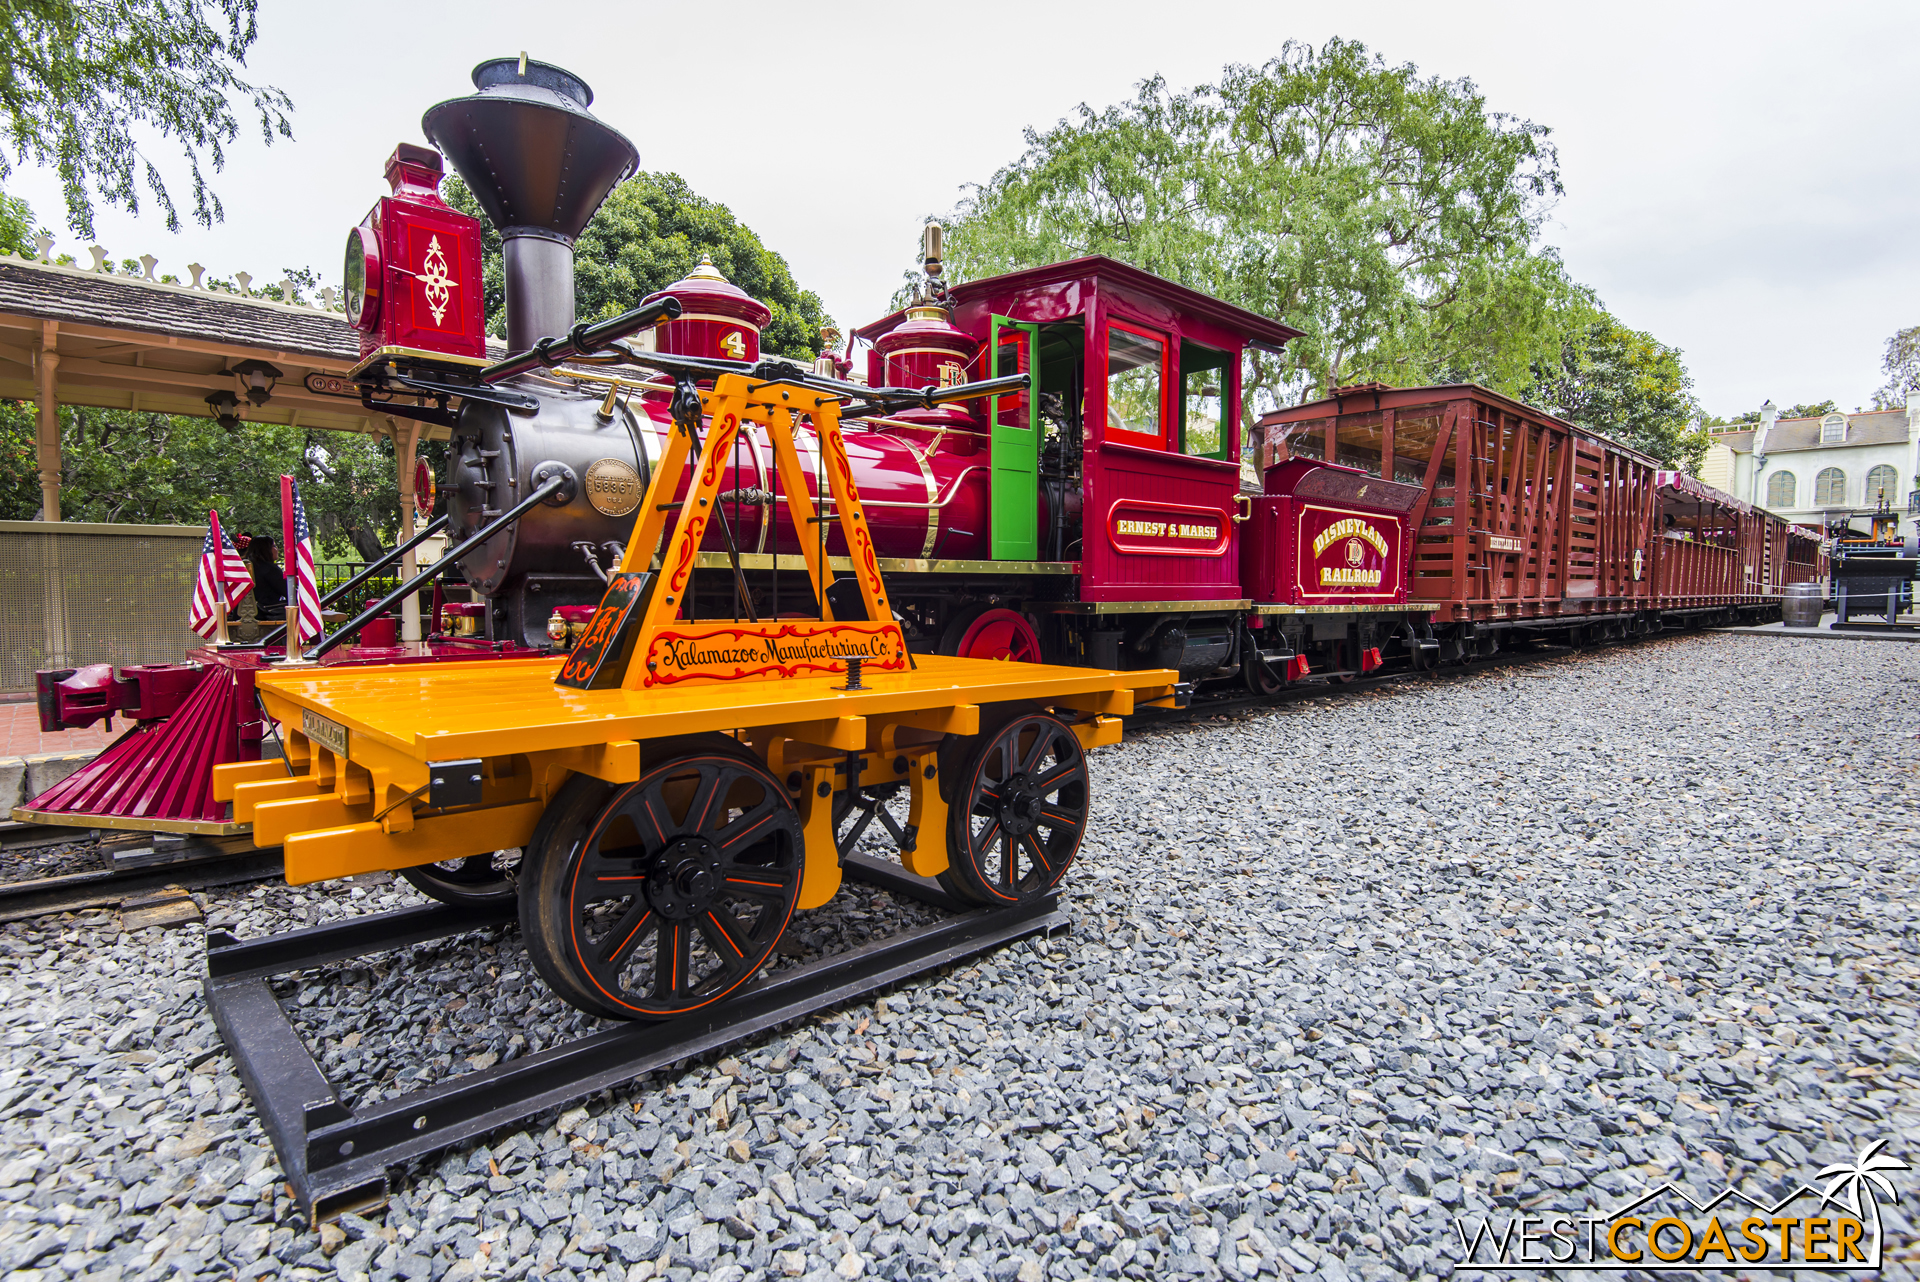 A handcar stands beside the train.